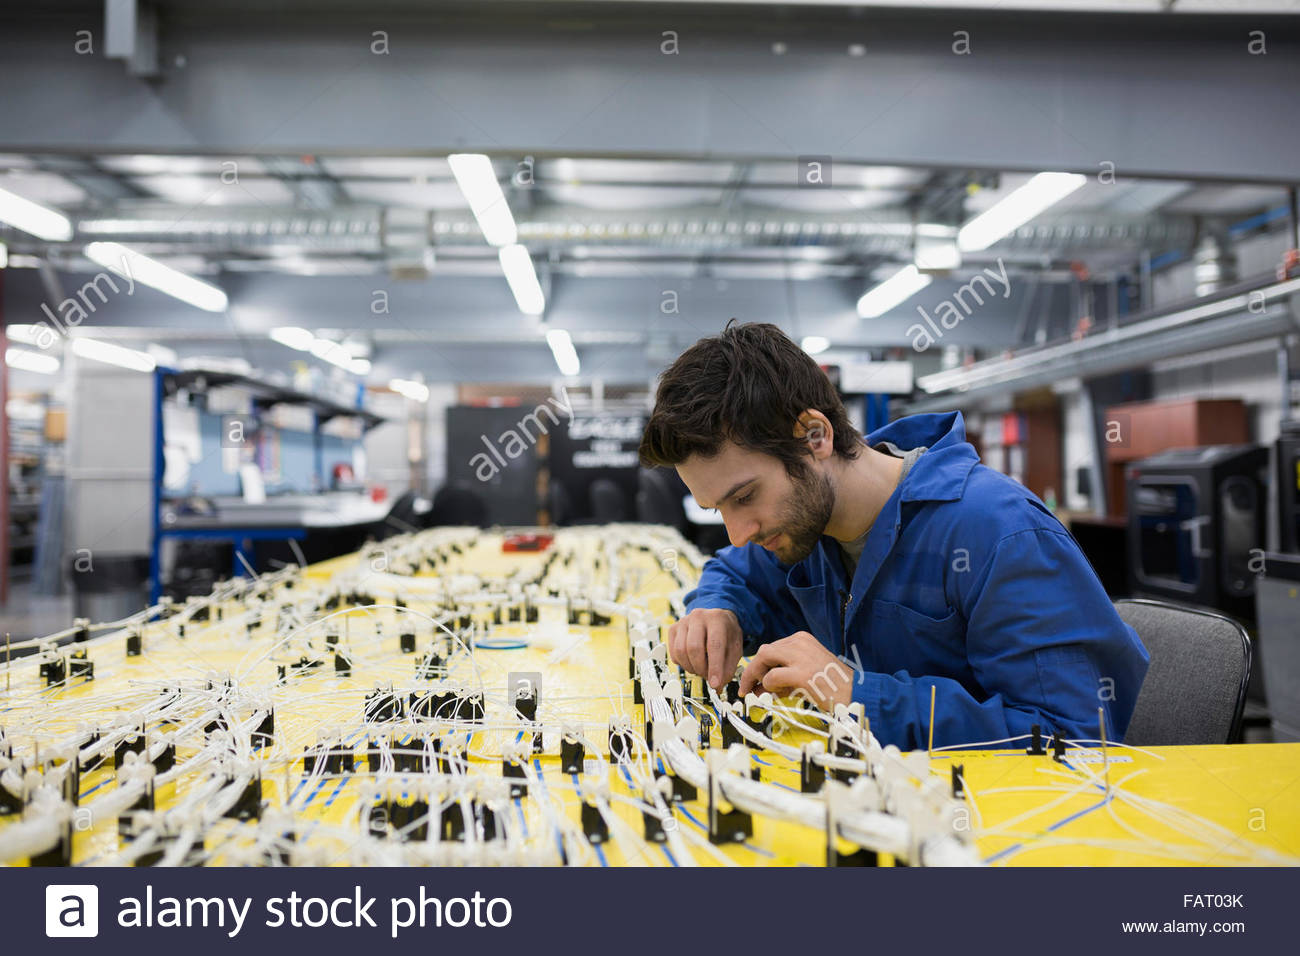 hight resolution of wiring harness stock photos u0026 wiring harness stock images alamyhelicopter technician repairing wiring harness stock